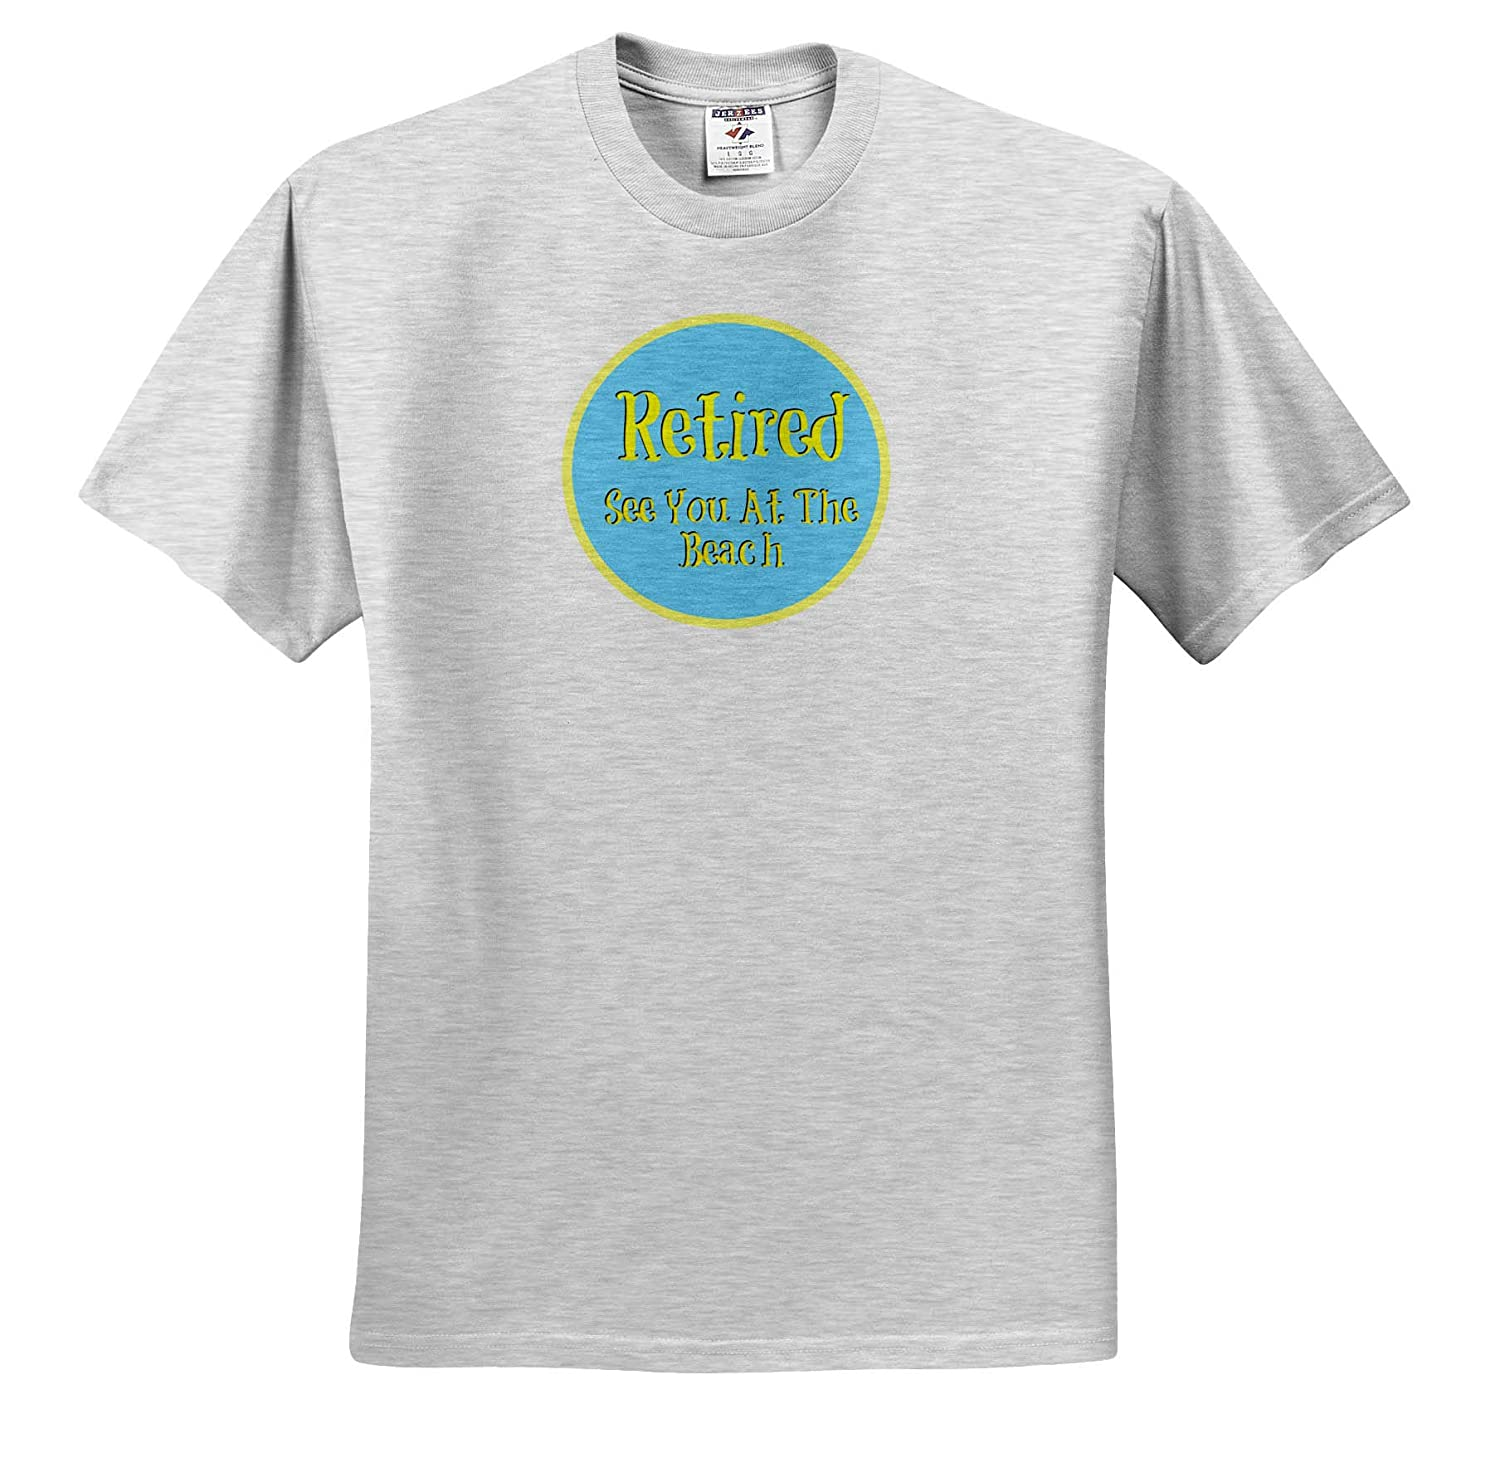 ts/_312653 Image of Retired See You at The Beach Adult T-Shirt XL 3dRose Carrie Merchant Quote